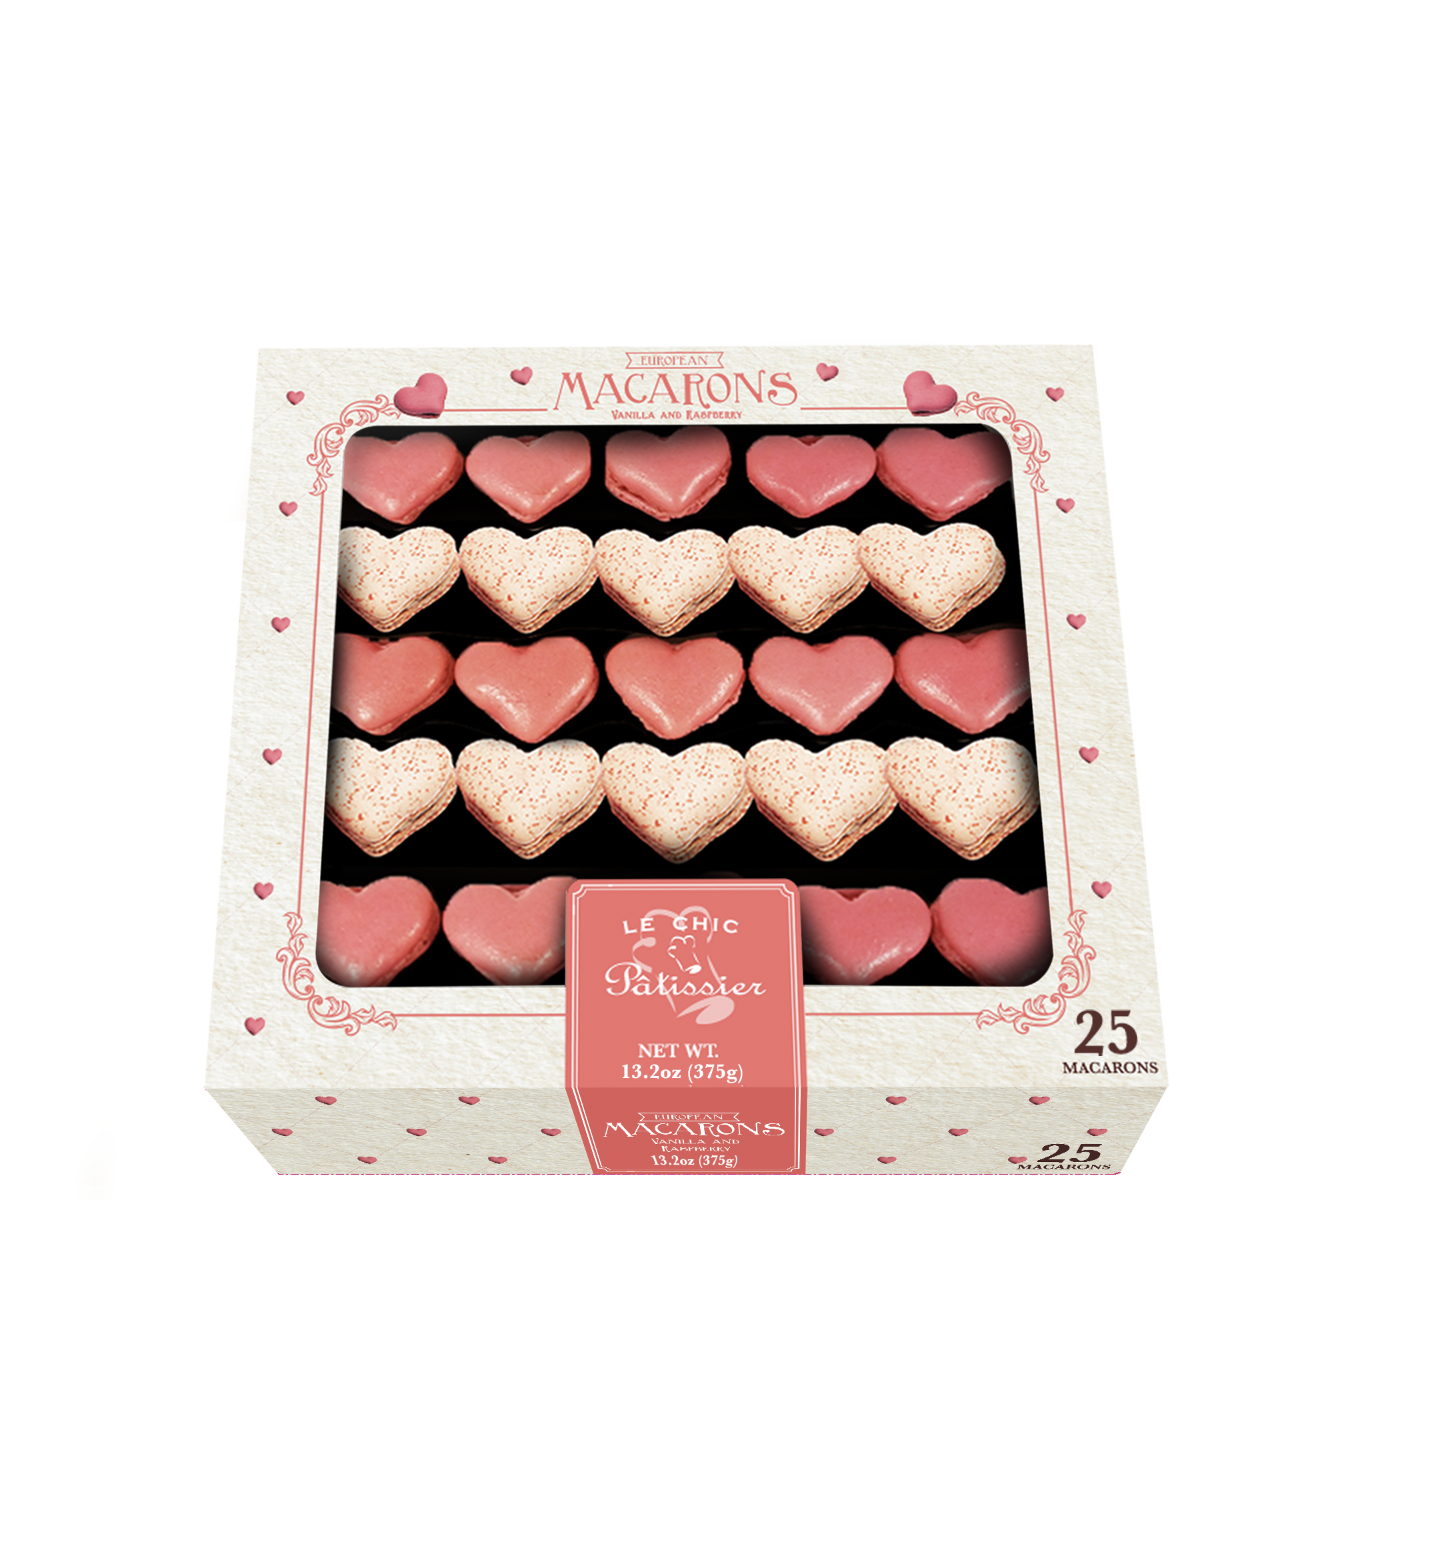 Valentine's Day Macarons 25ct image.png